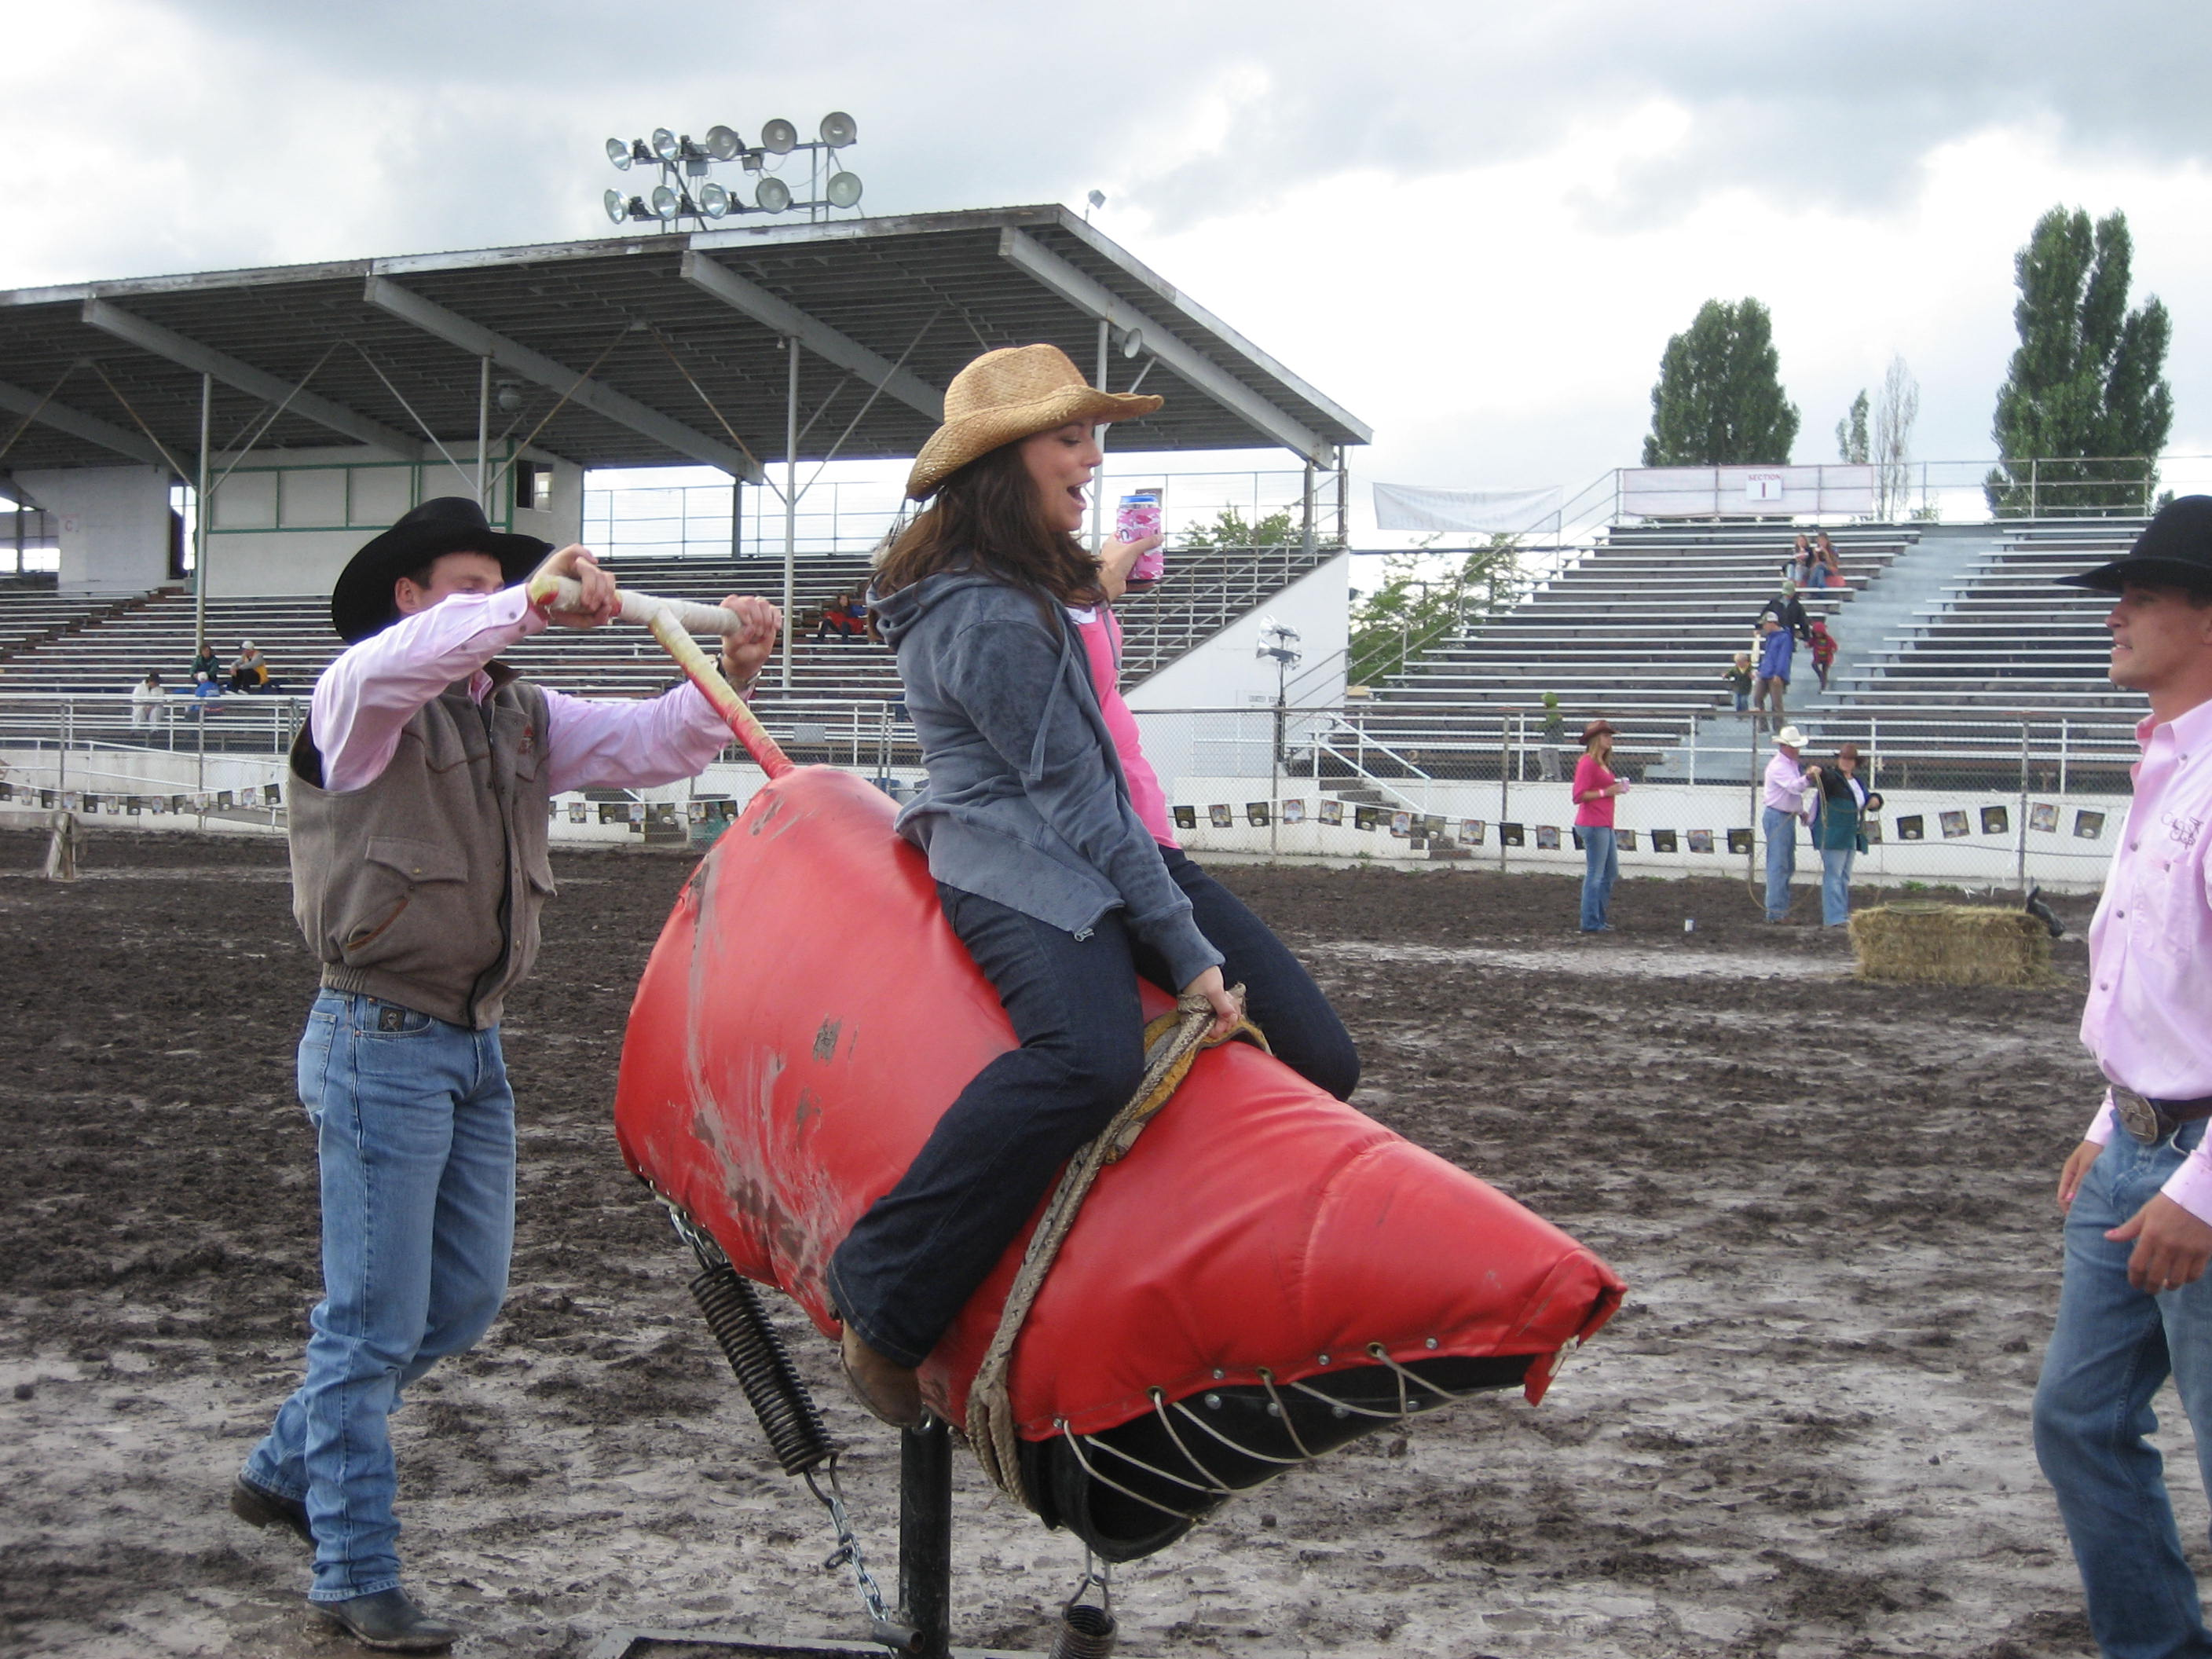 And she didn't even spill her beer, budding bull riding talent!